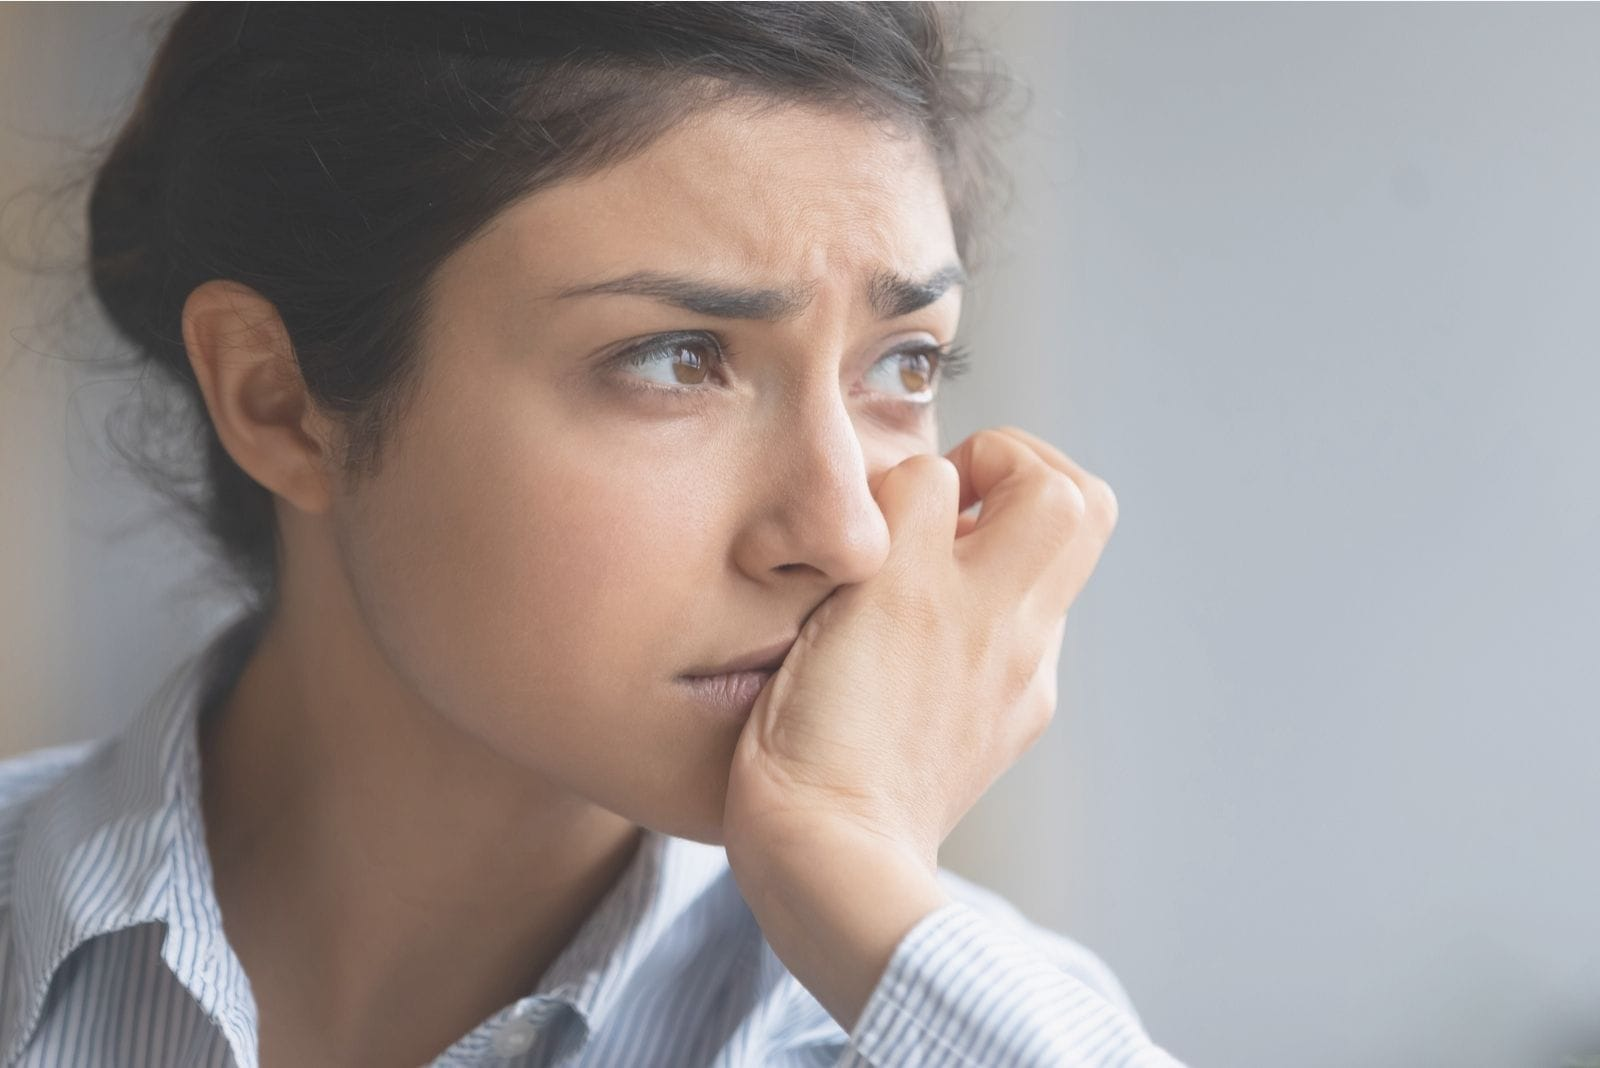 unhappy indian woman overthinking in a close up image